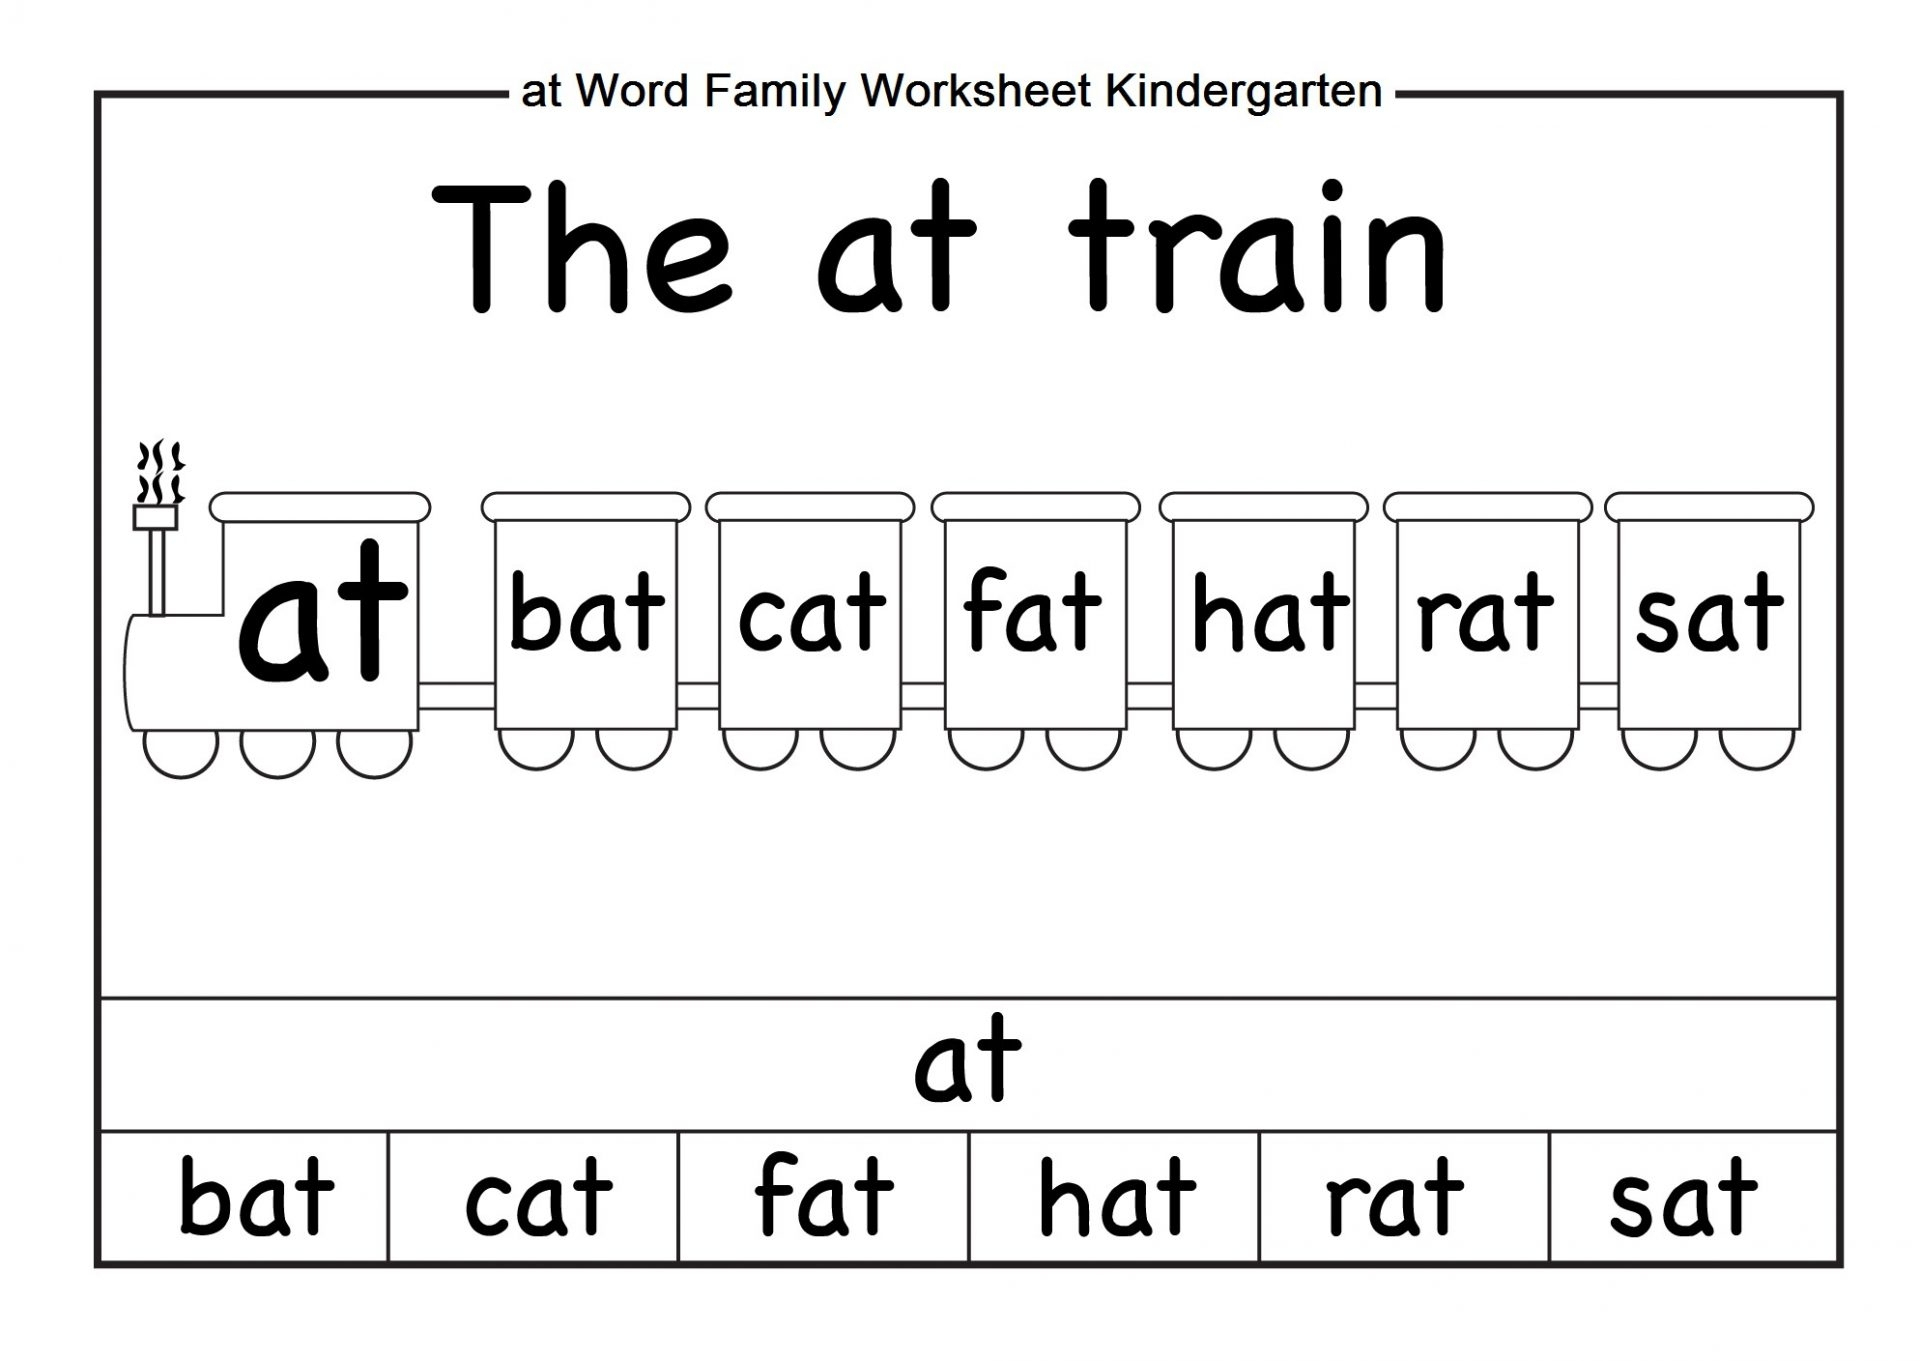 Beautiful Math Worksheets For Kindergarten Pdf Fun Worksheet In | Free Printable Word Family Worksheets For Kindergarten